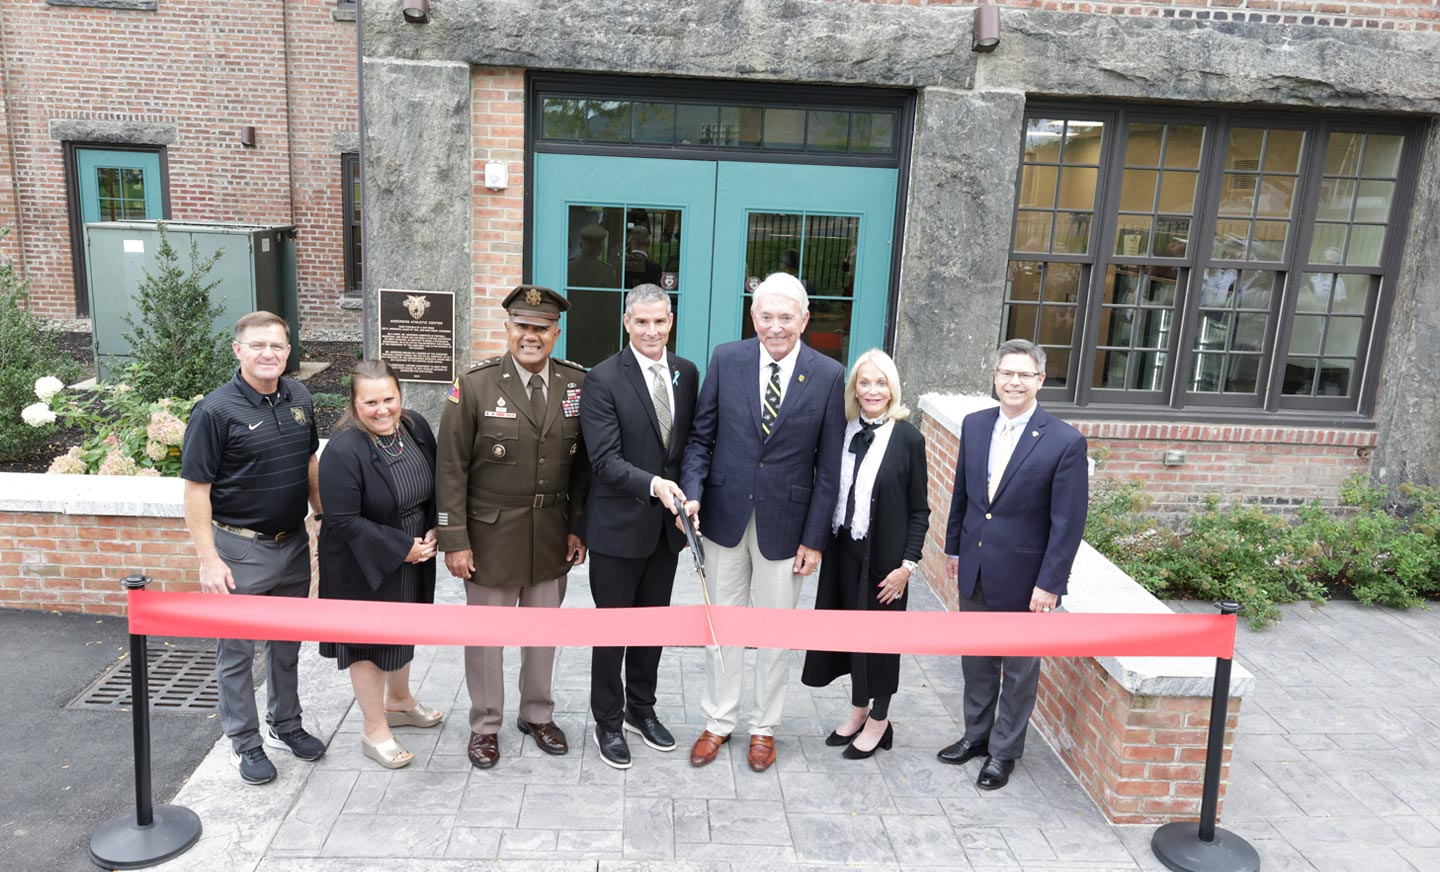 West Point Anderson Athletic Center Ribbon Cutting Ceremony